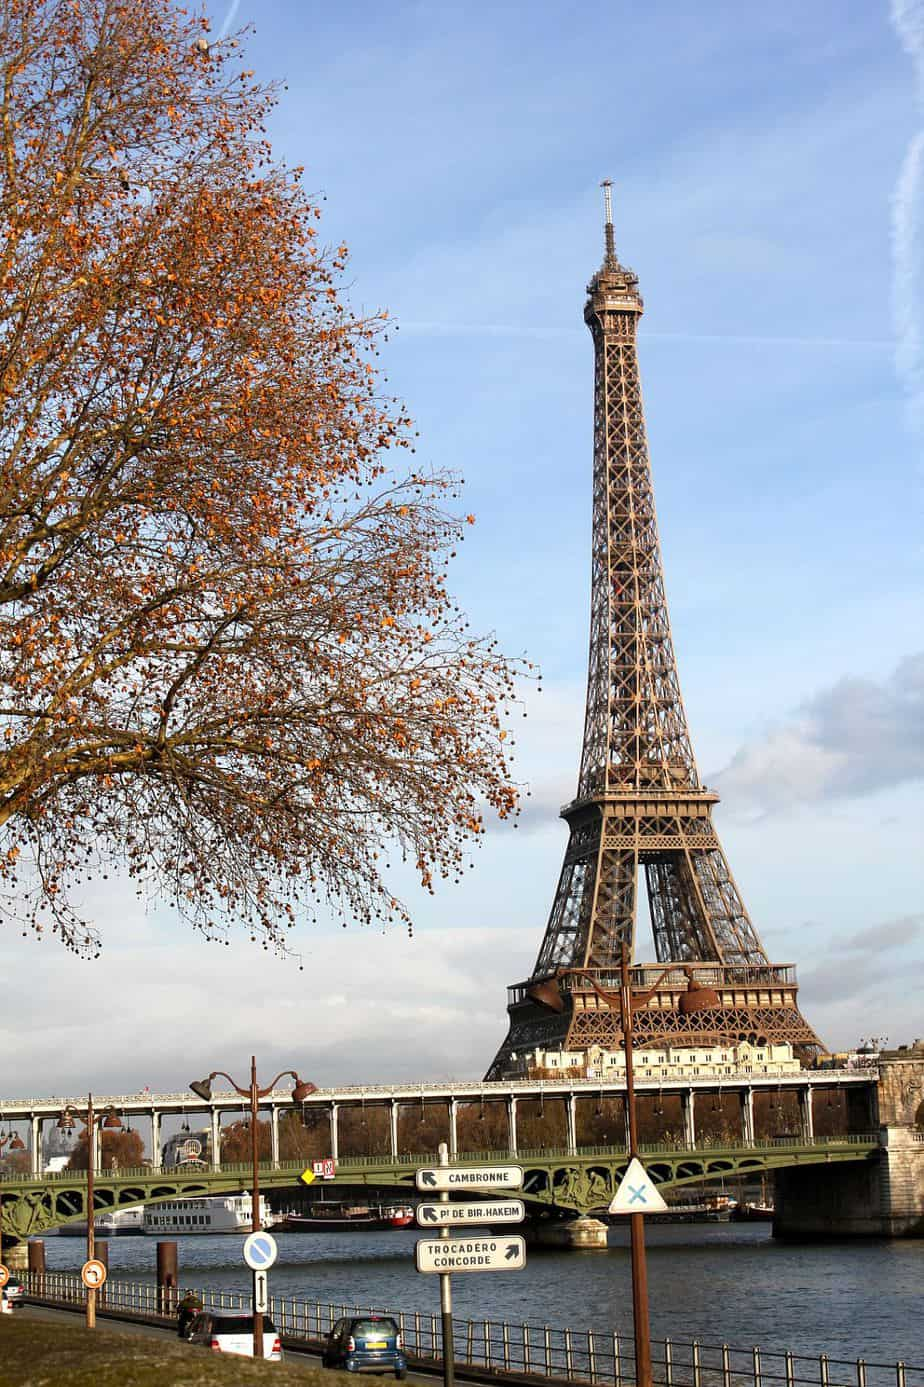 Today Back in 1889 – The Eiffel Tower